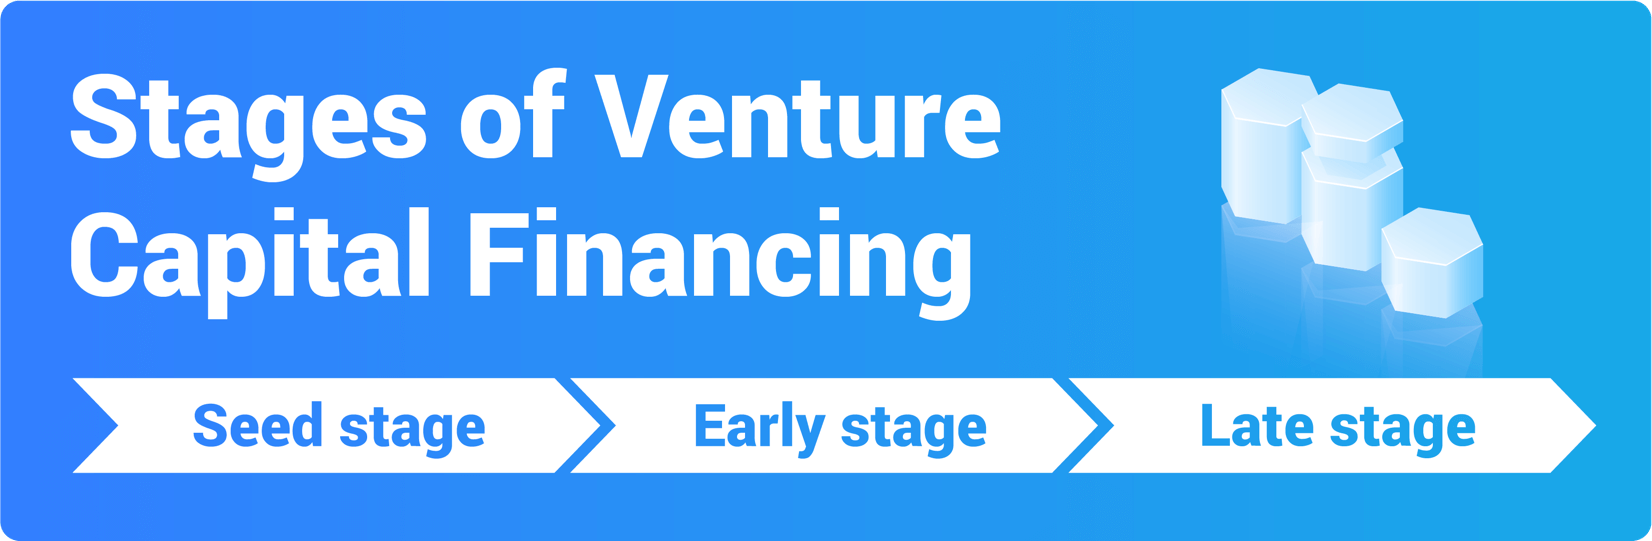 Venture Capital Financing Stages